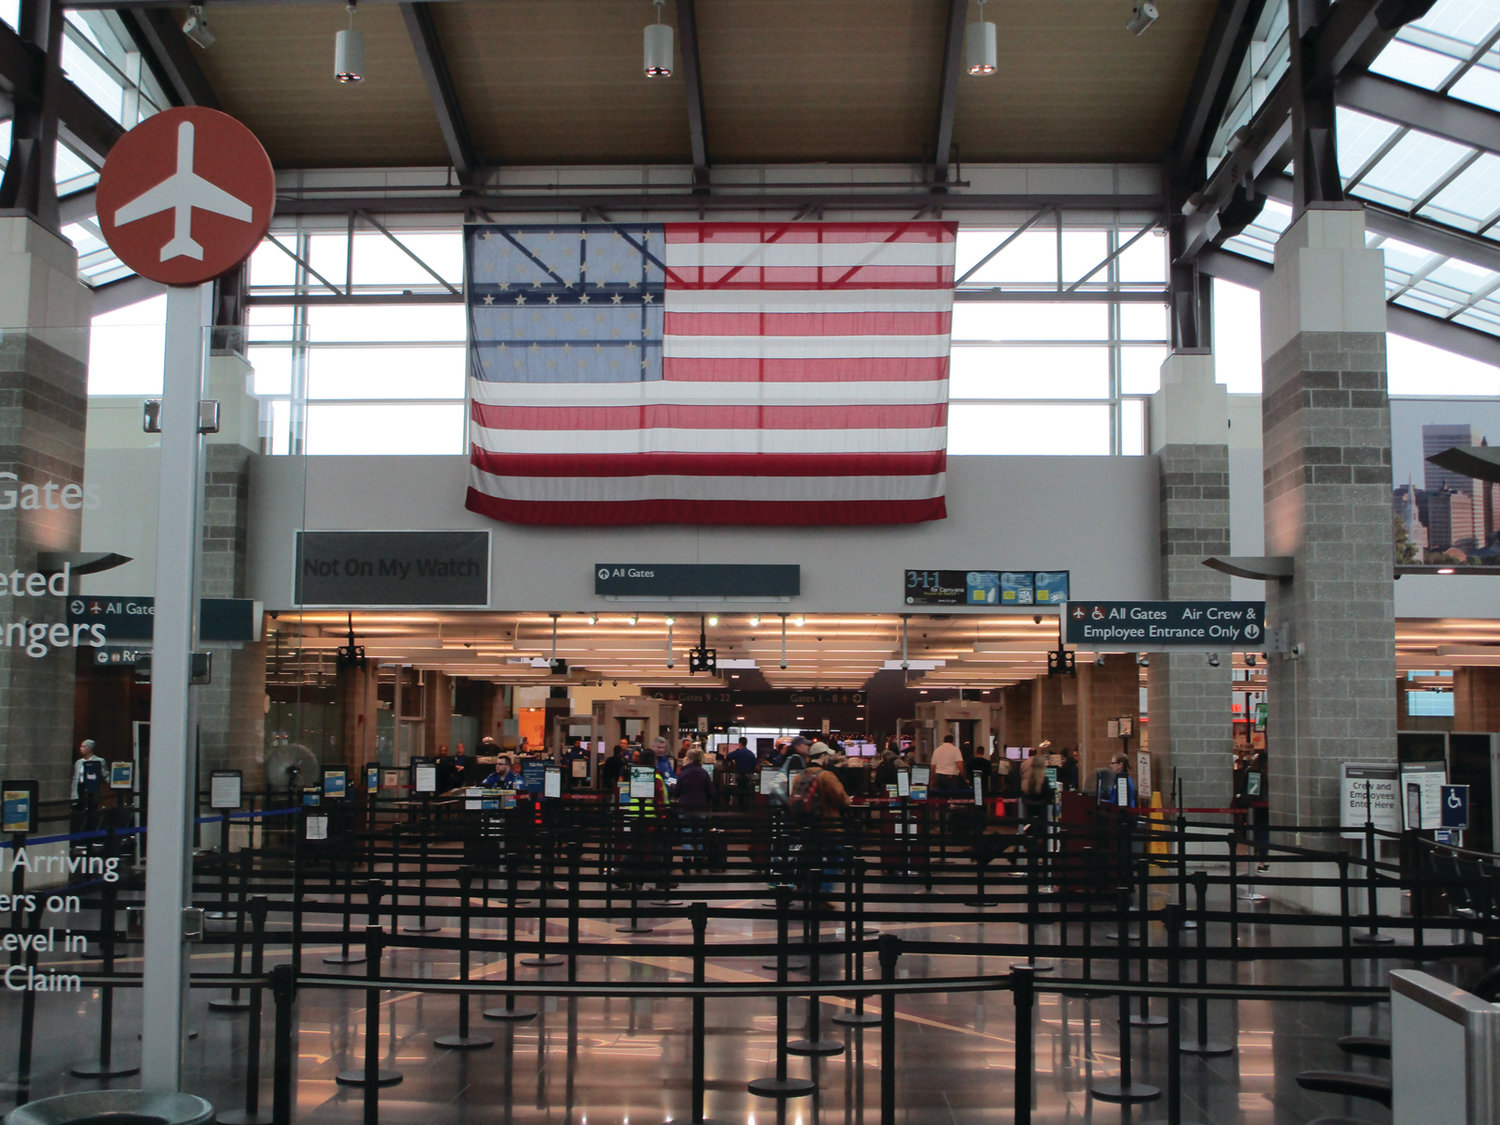 READY TO FLY: Volume was light and lines were short as travelers made their way through T.F. Green's security checkpoint on Friday. Approximately 4.3 million passengers flew from, or to, the airport in 2018.